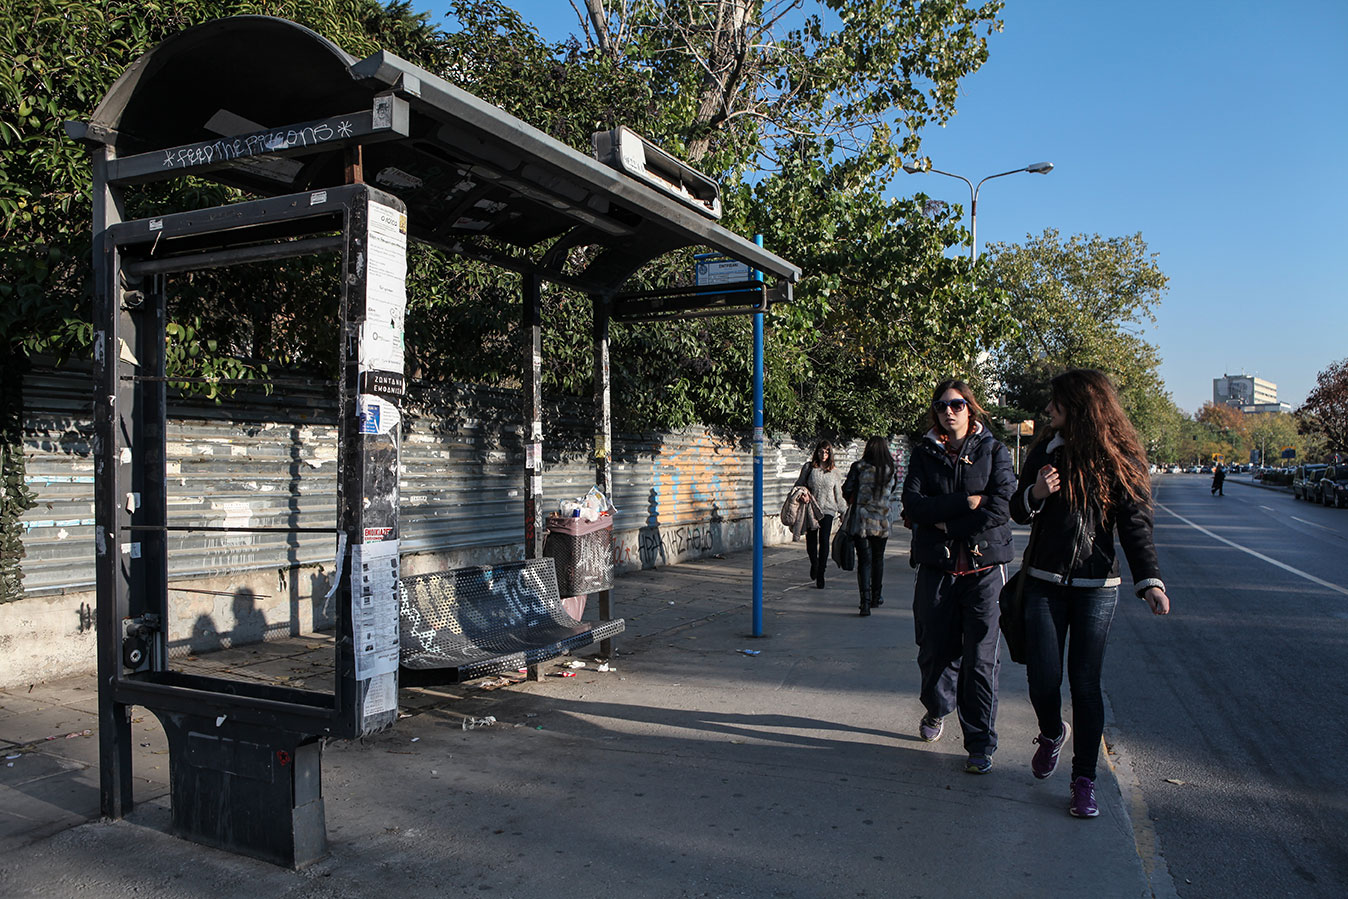 A crumbling bus shelter: one of the many scars left by the violent anti-austerity demon­strations that rocked Thessaloniki in the recent past. Due to the drastic drop in public advertisement revenues, the city is unable to maintain or replace any public property.